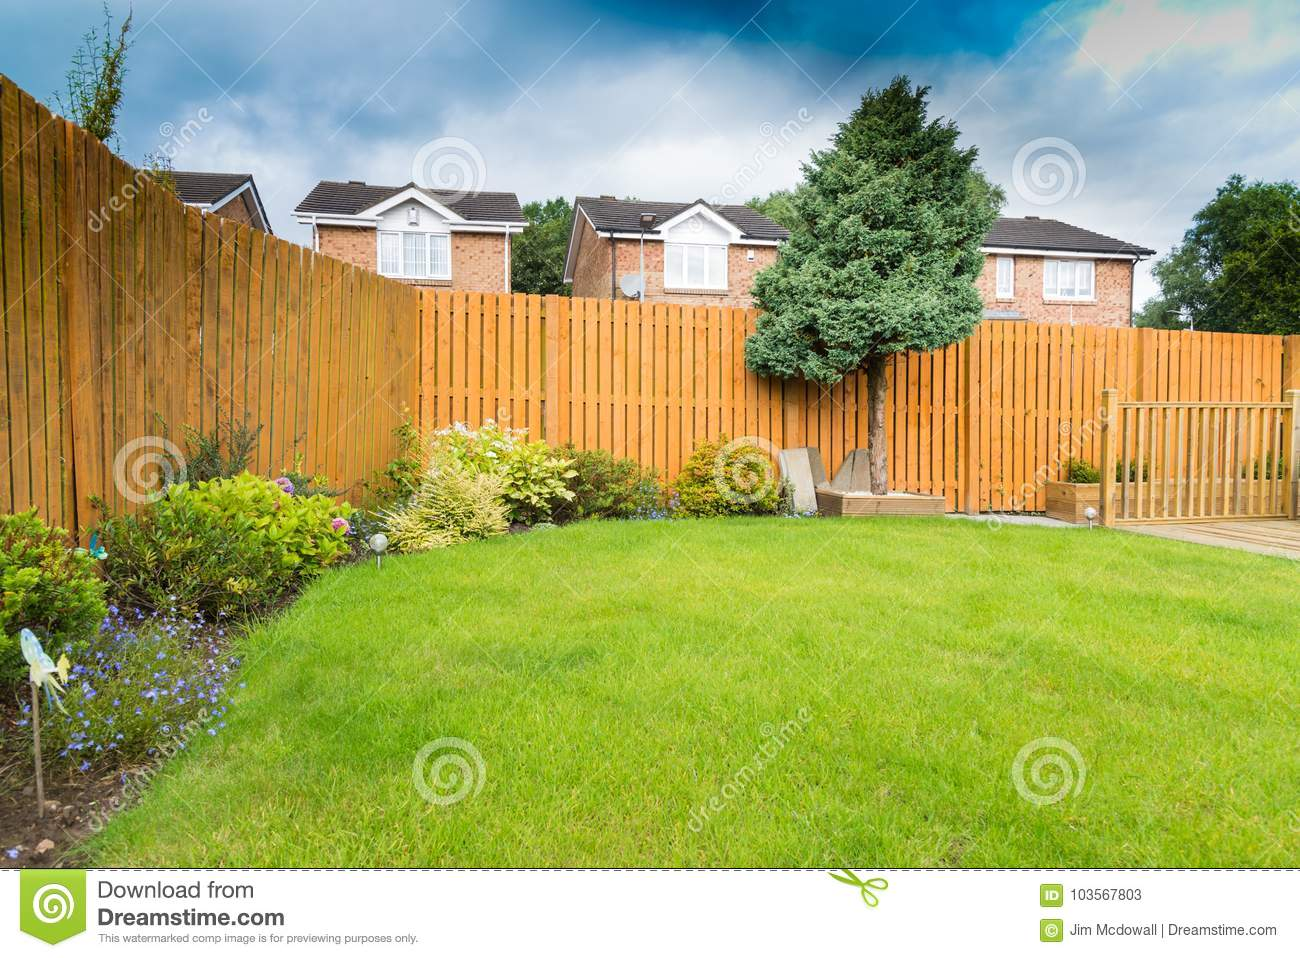 Garden Border With Fencing And Shrubs Stock Image Image Of